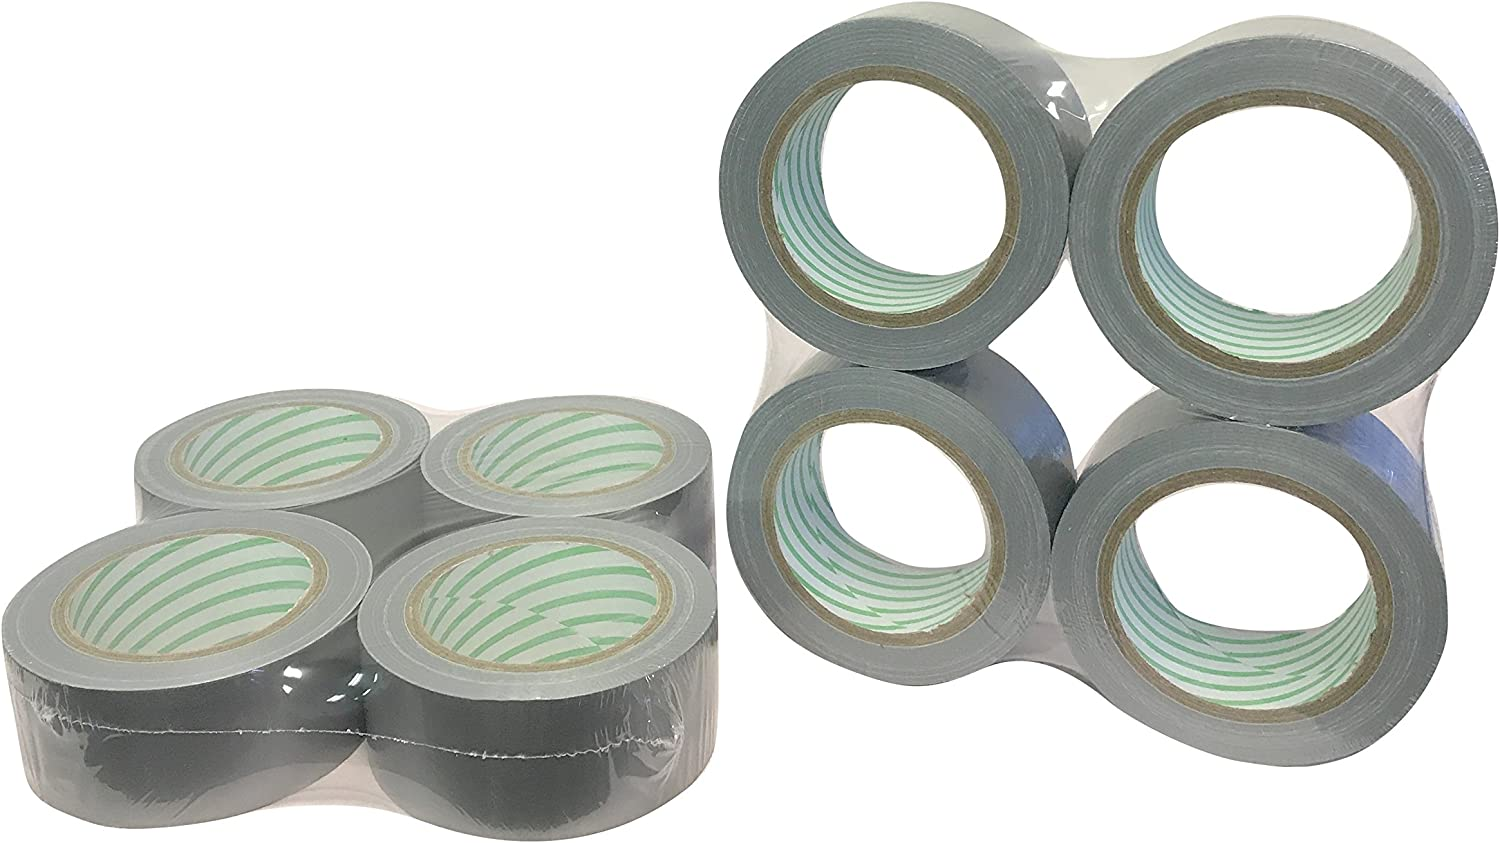 Multi-Purpose Duct Tape 2 inch x 30 yd 8 Pack 7 mil Direct Explorer Brand